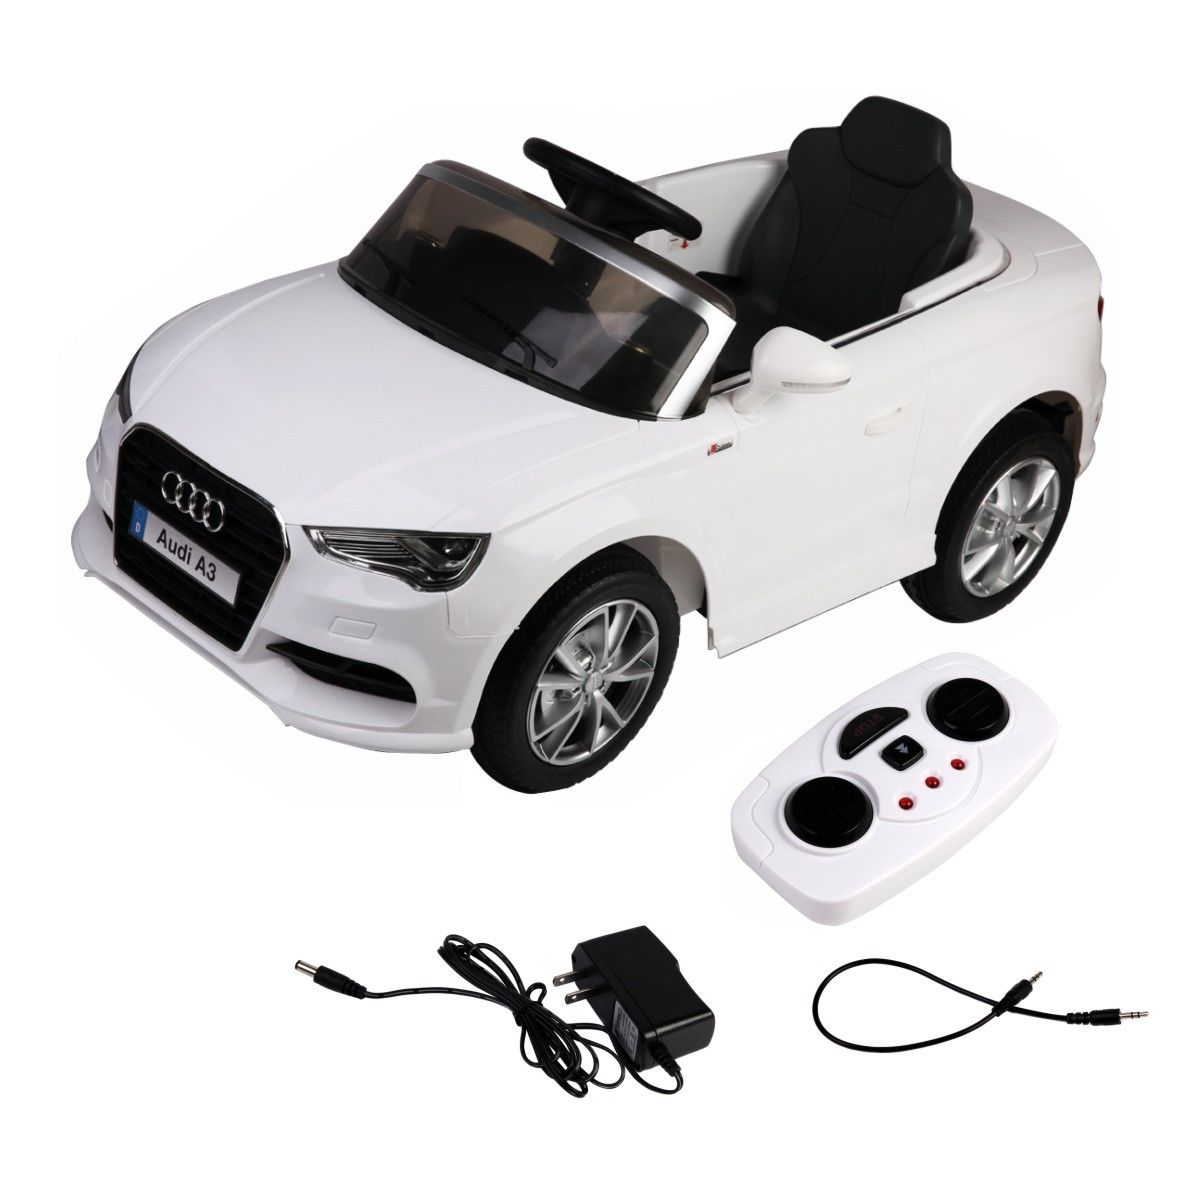 Costway Costway V Audi A Licensed RC Kids Ride On Car Electric - Audi electric toy car